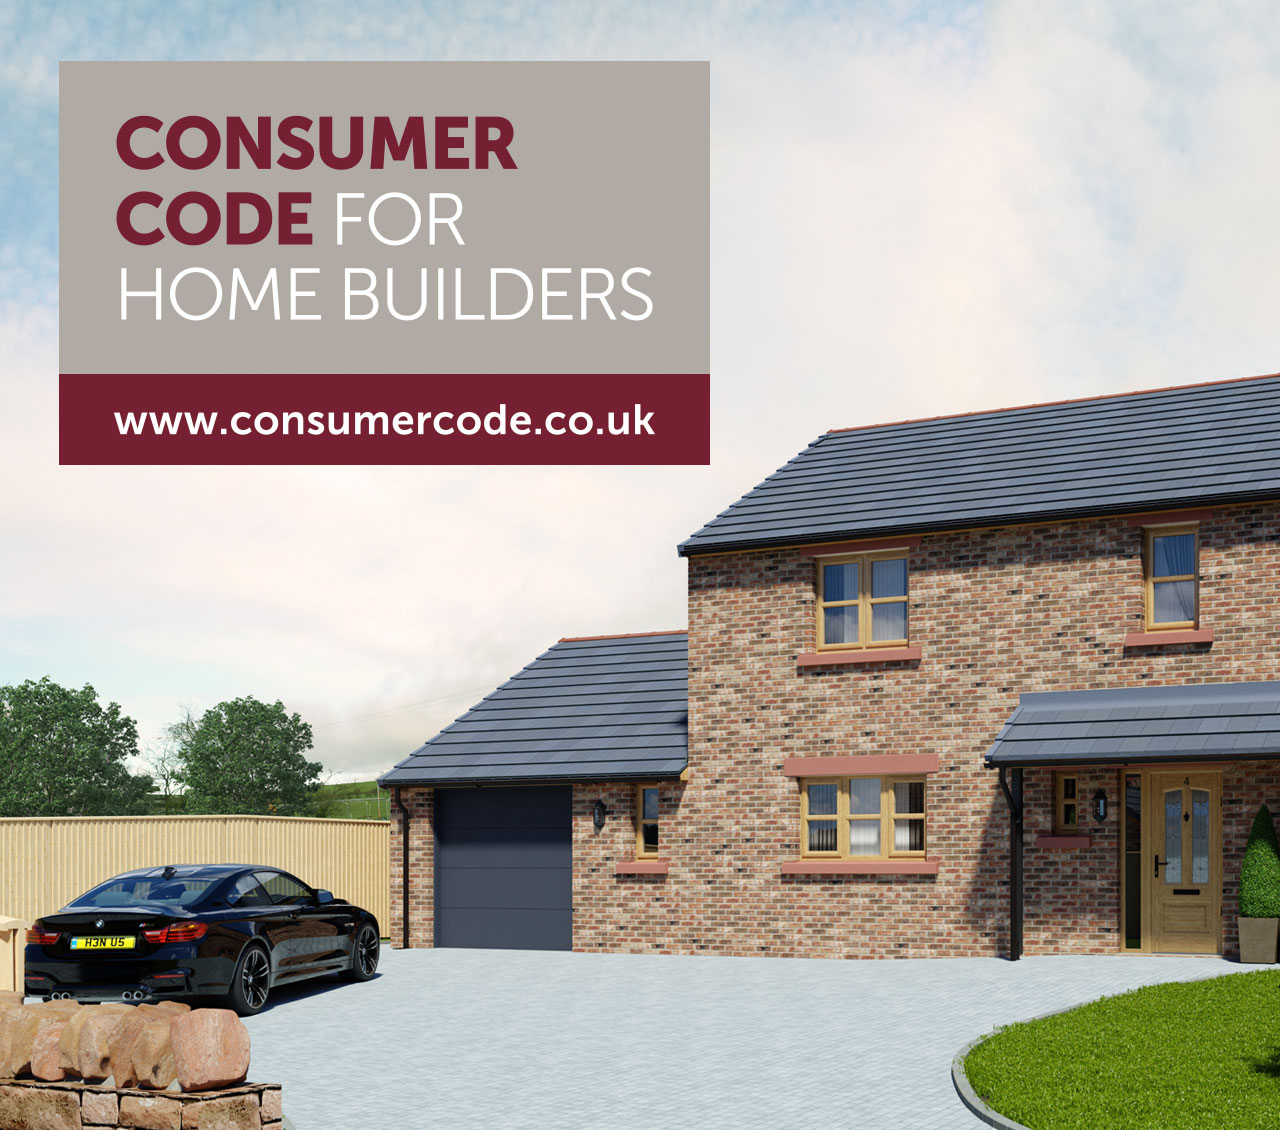 The Consumer Code